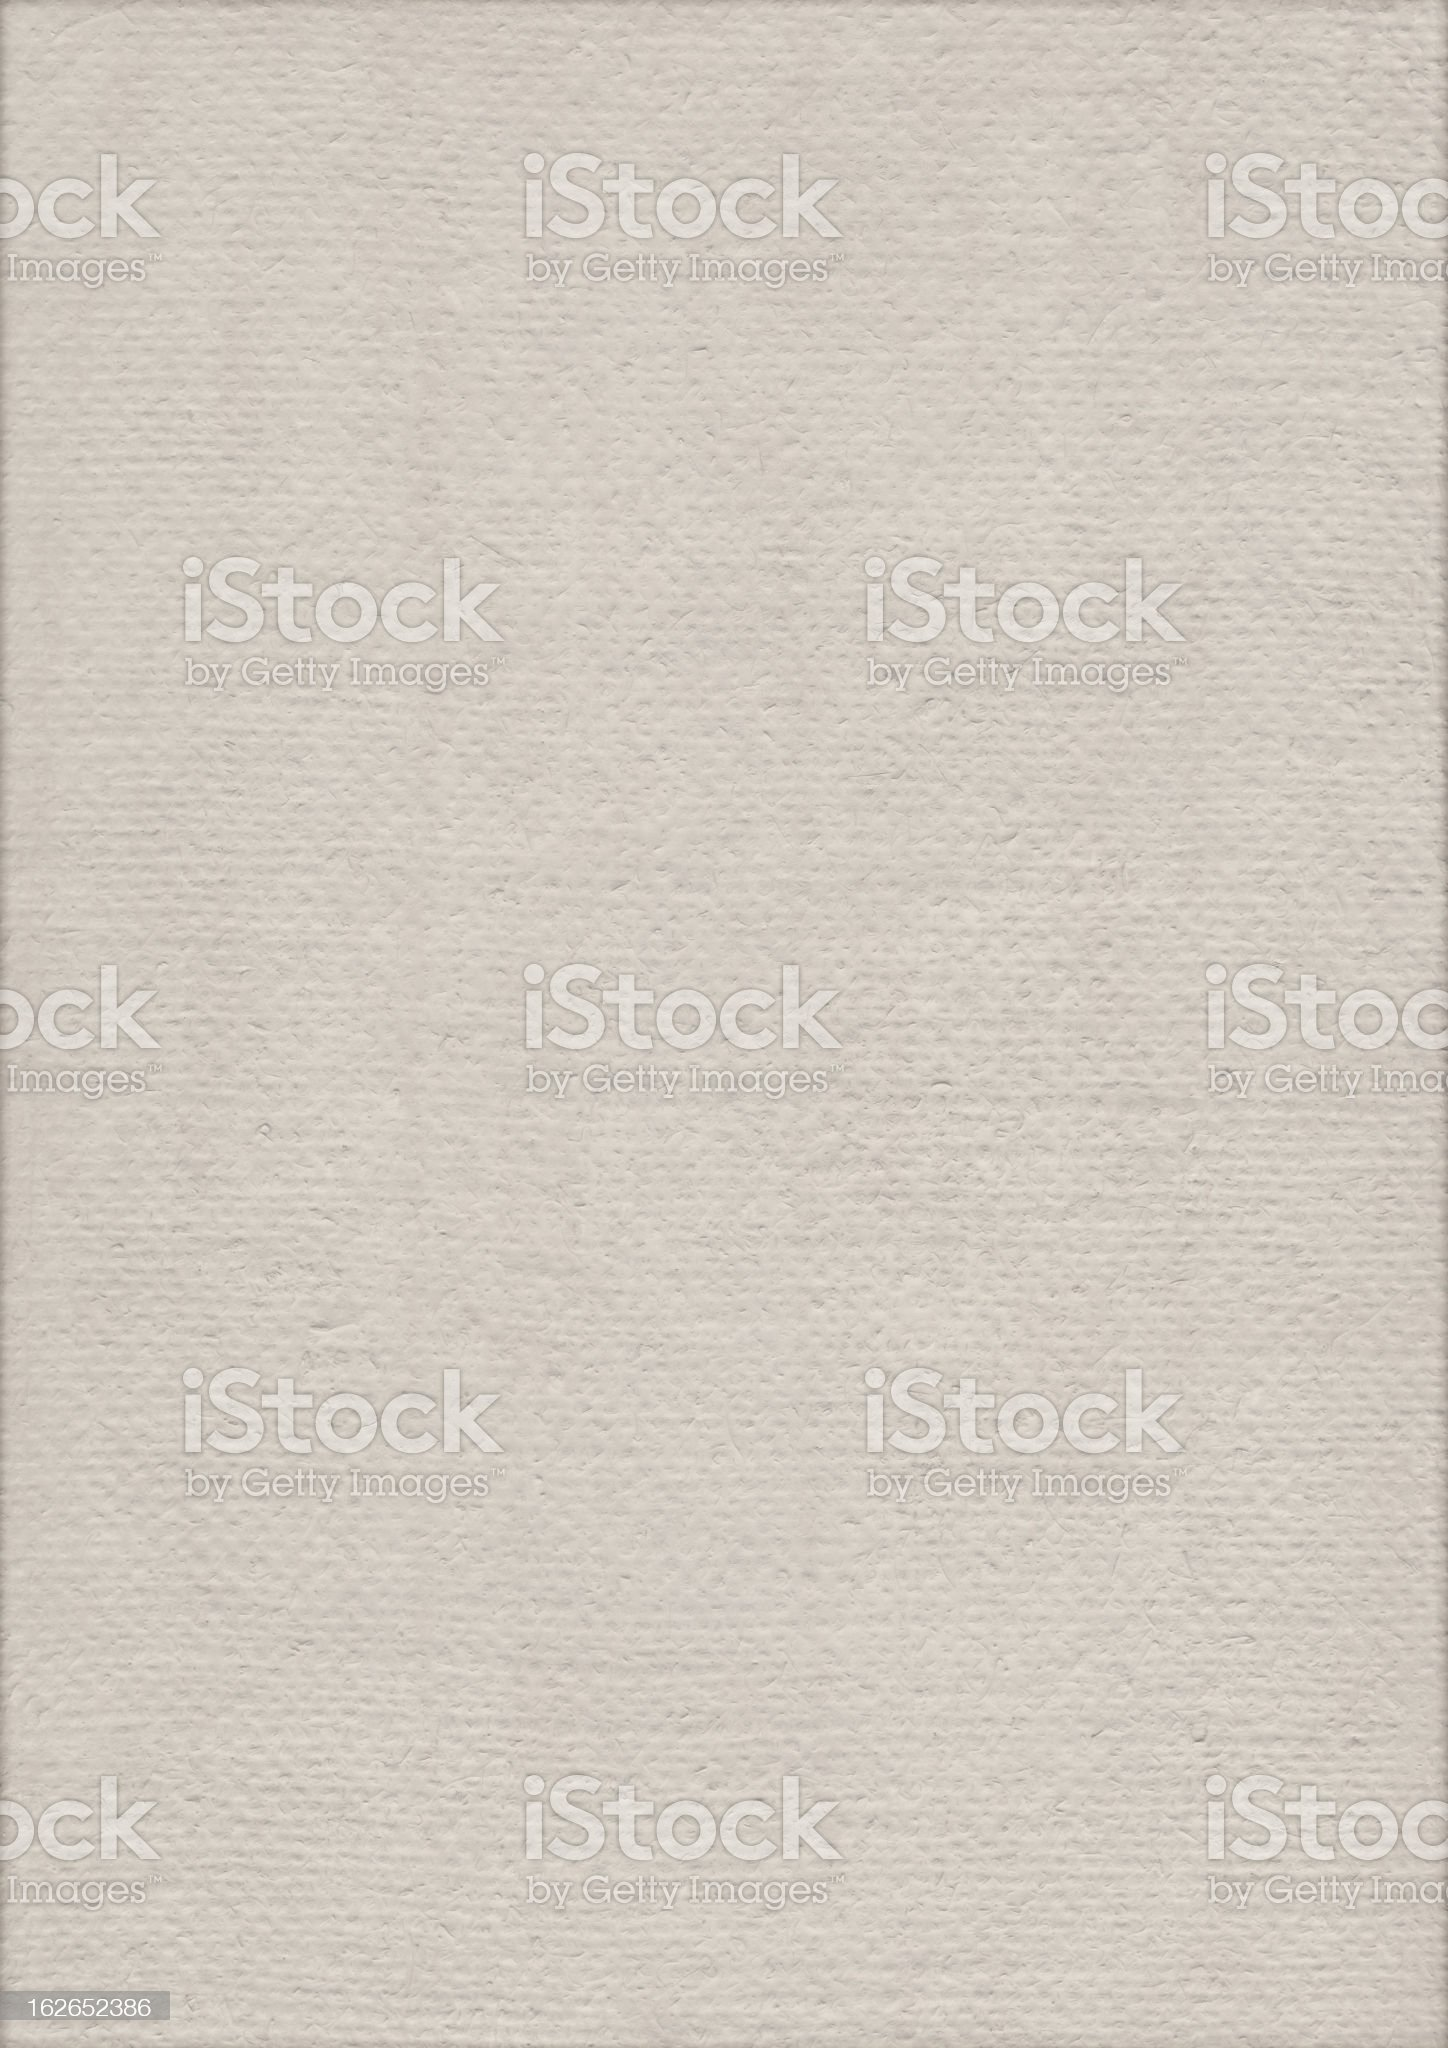 Coarse grain canvas background graphic royalty-free stock photo